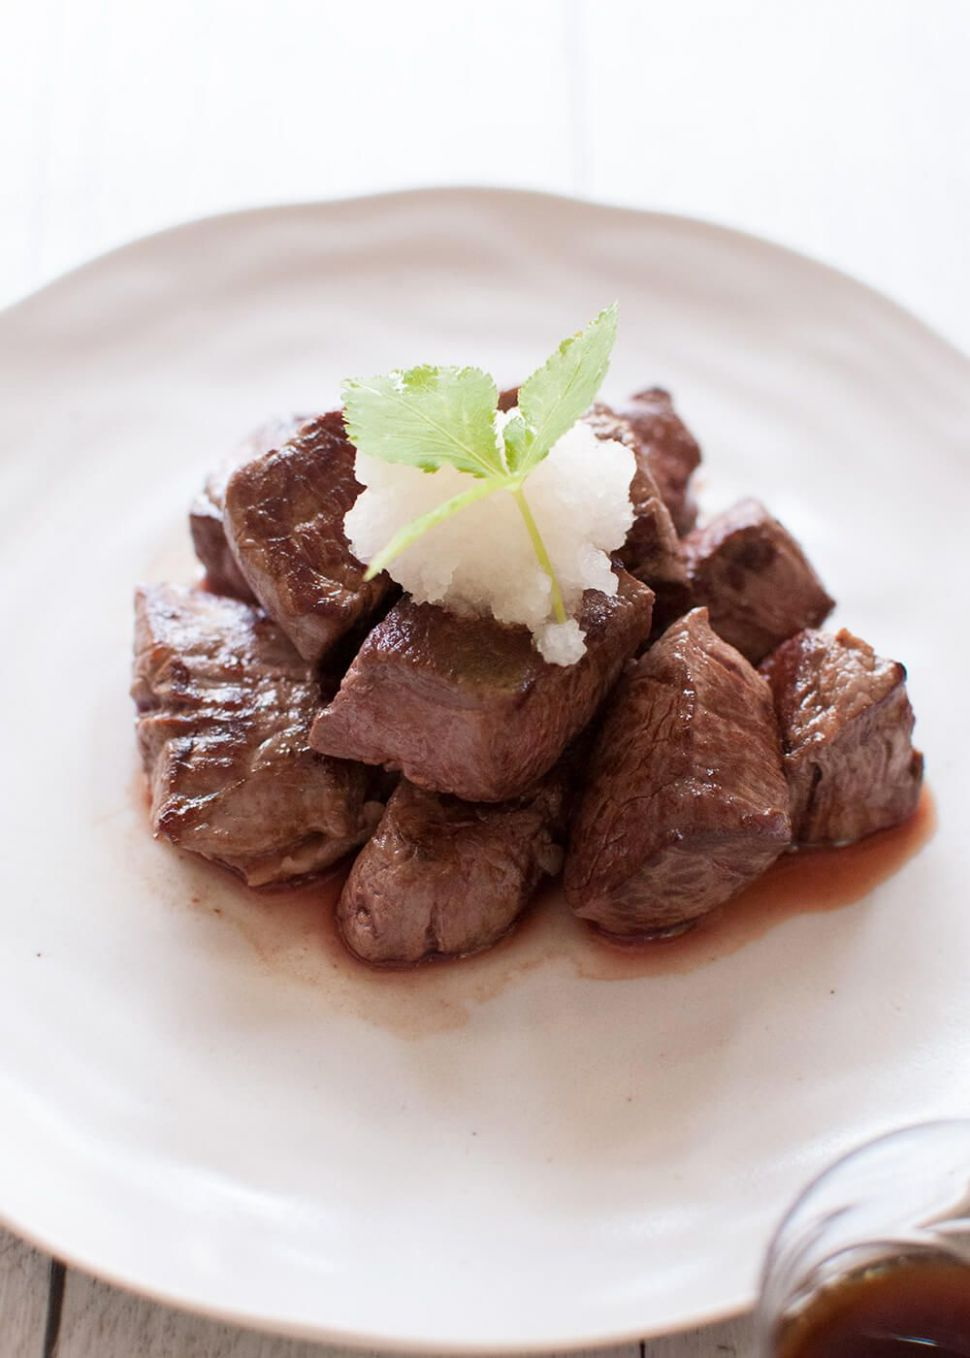 Diced Beef Steak (Saikoro Steak) with Japanese Style Sauces - Recipes Diced Beef